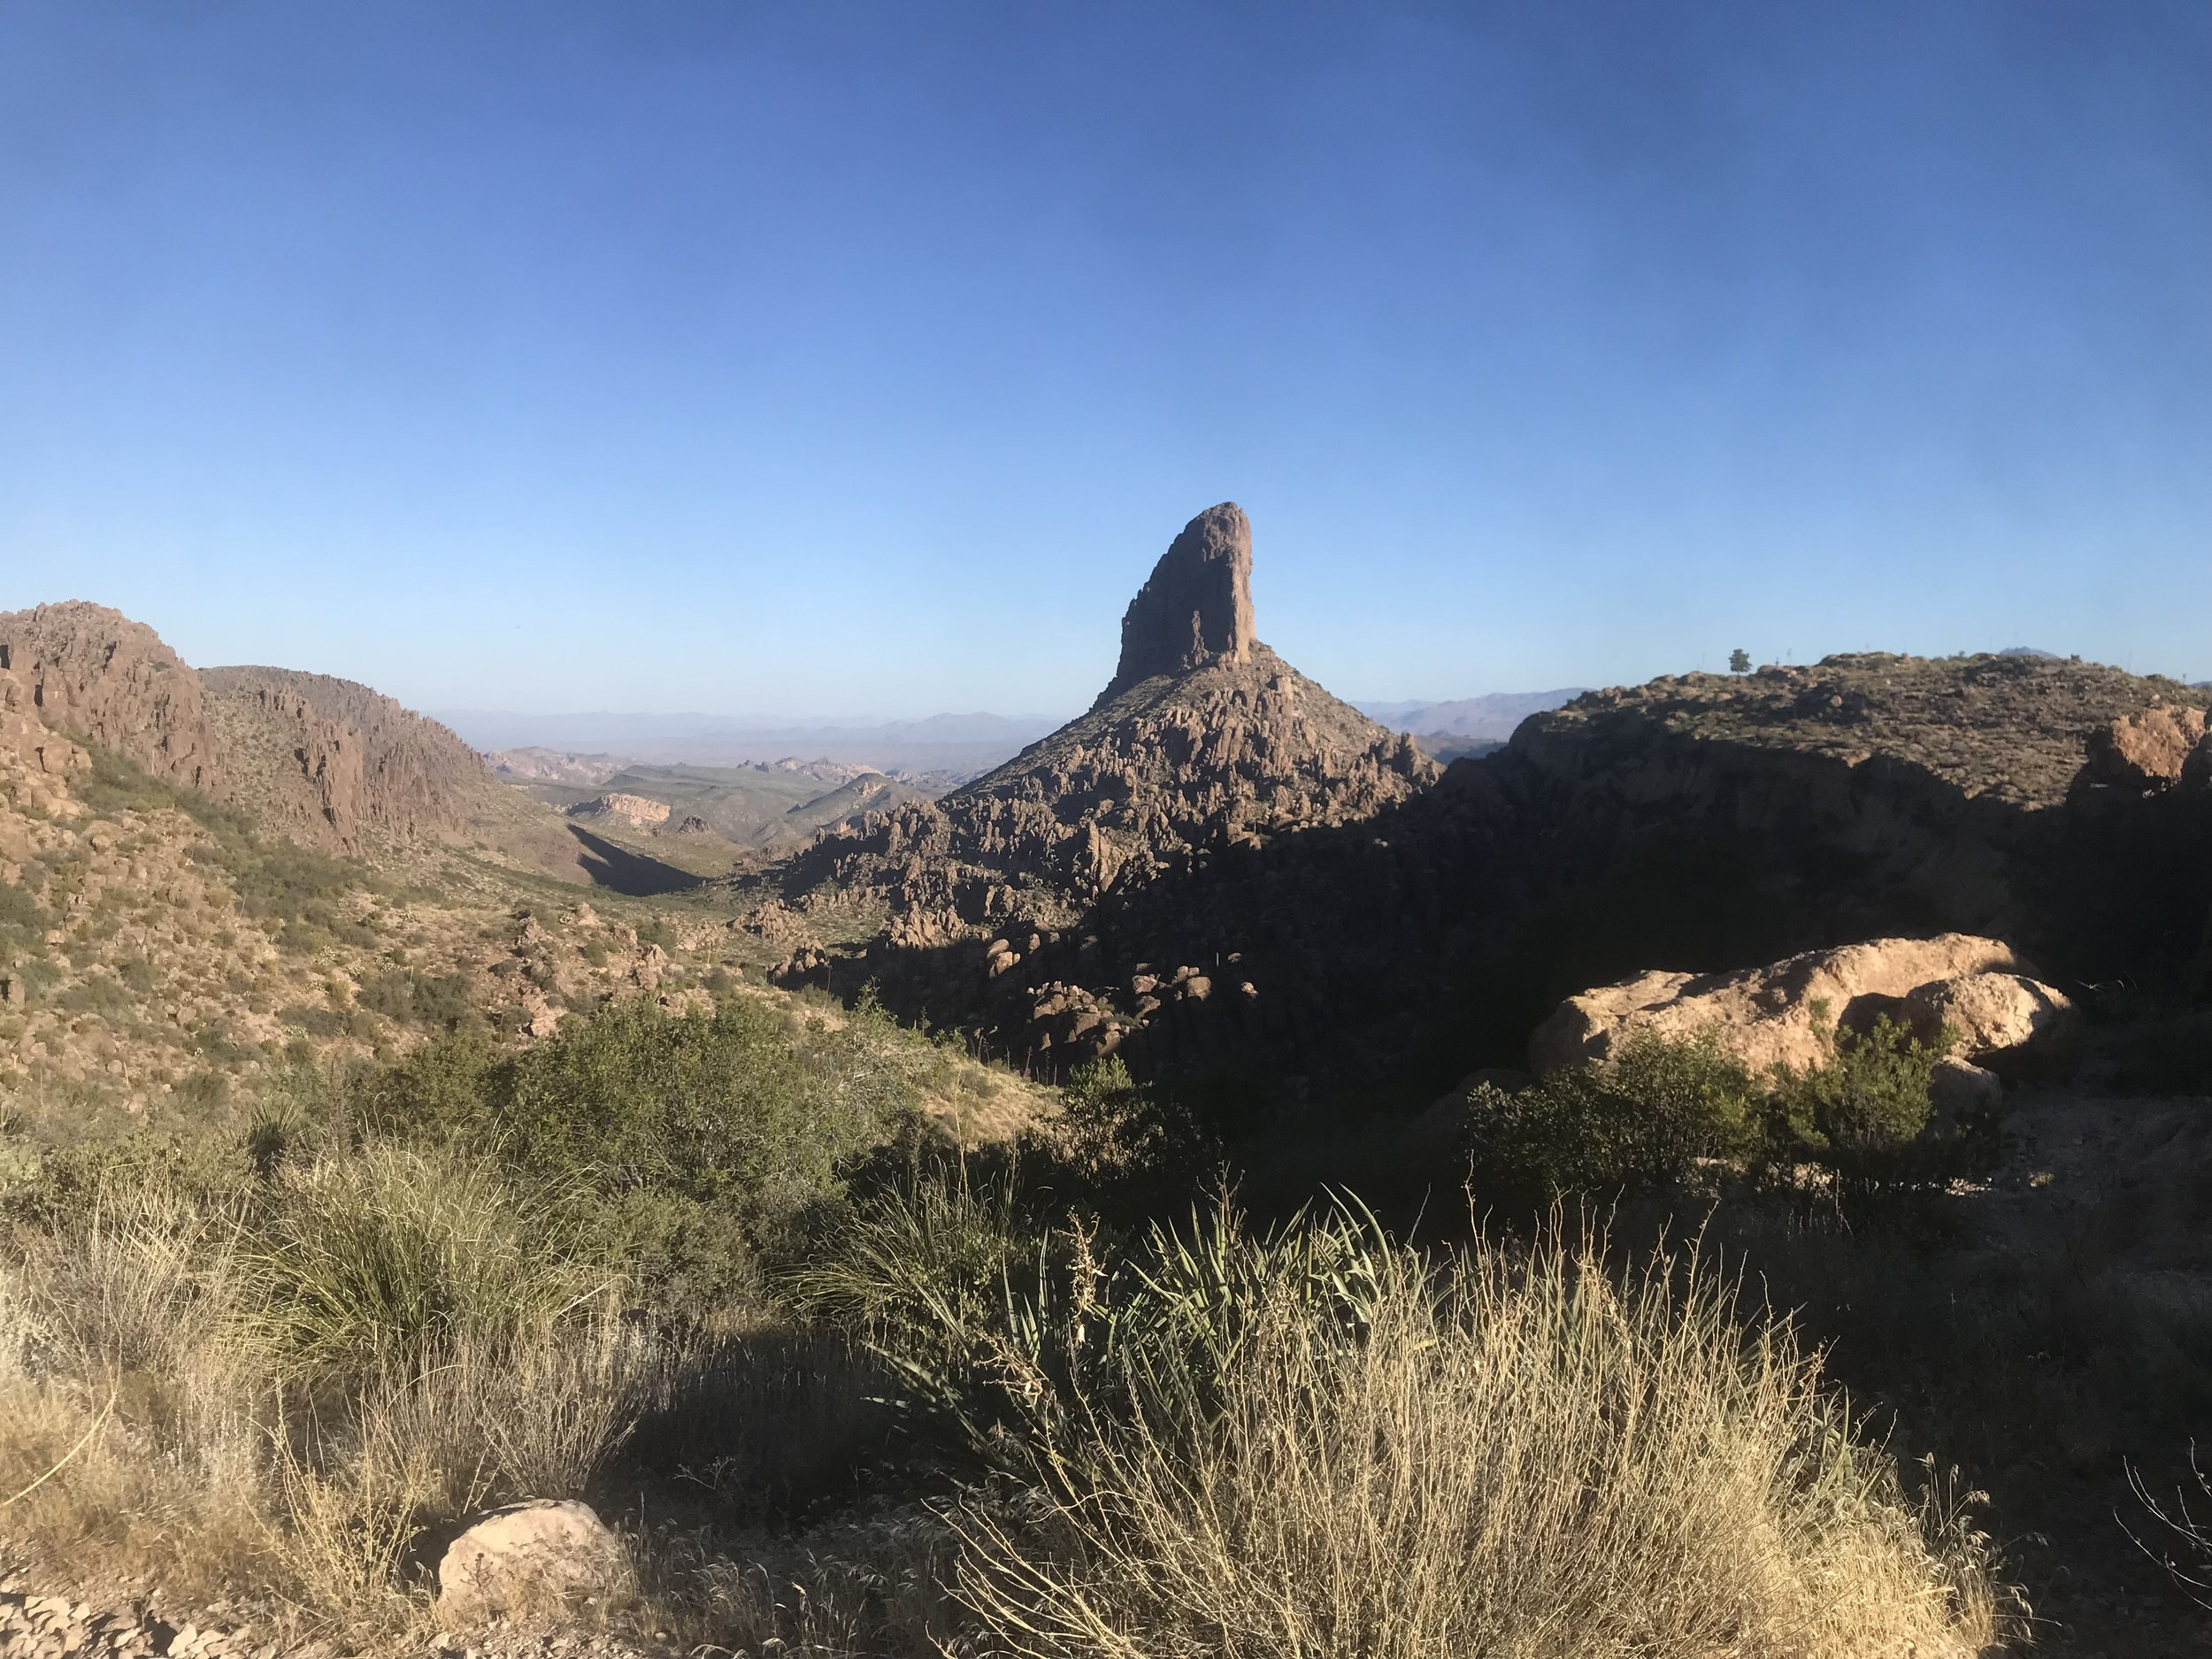 Hiking with Alex in the Superstition Wilderness. Photo of Weaver's needle.